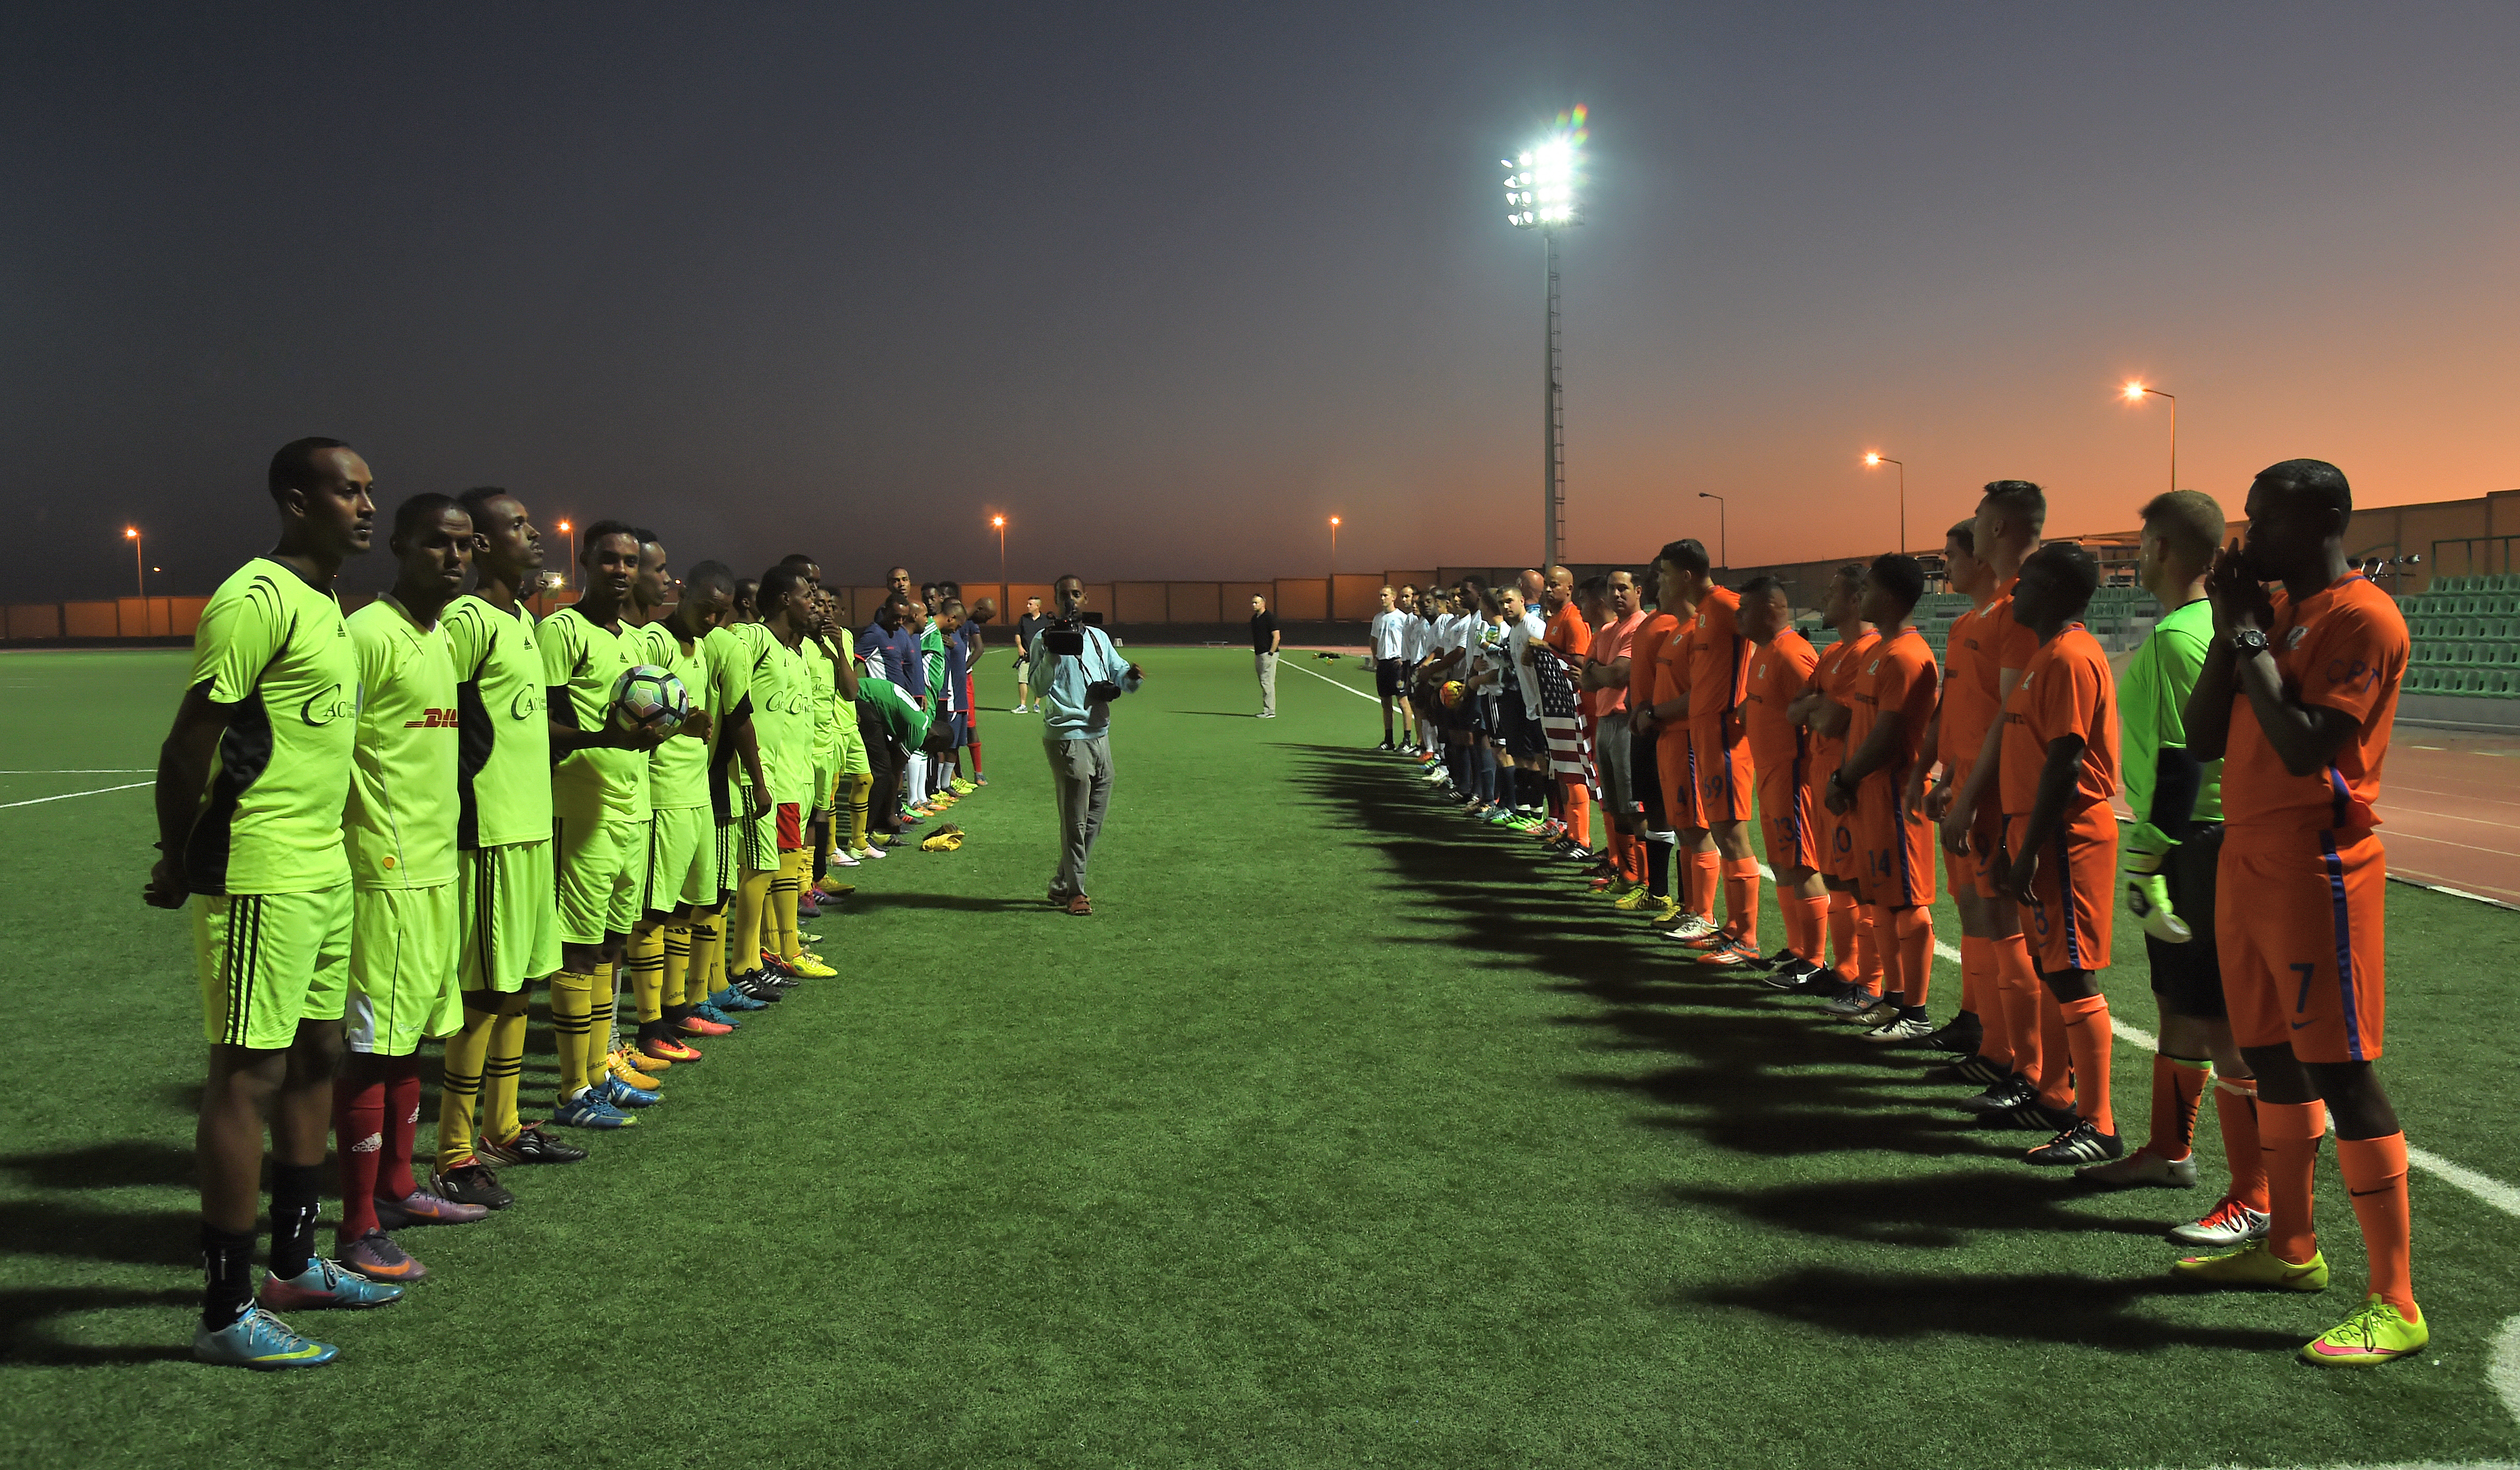 Teams comprised of U.S. military members stationed at Camp Lemonnier, and members of the Djibouti Armed Forces (FAD) Republican Guard face off for the first in a series of friendly soccer matches at the Balbala Sports Complex in Djibouti City, Jan. 1, 2017. Through the organization of regular sporting events, the U.S. service members strive to strengthen the relationship with their FAD counterparts as well as with partner nation militaries operating in the Horn of Africa.  (U.S. Air National Guard photo by Master Sgt. Paul Gorman)